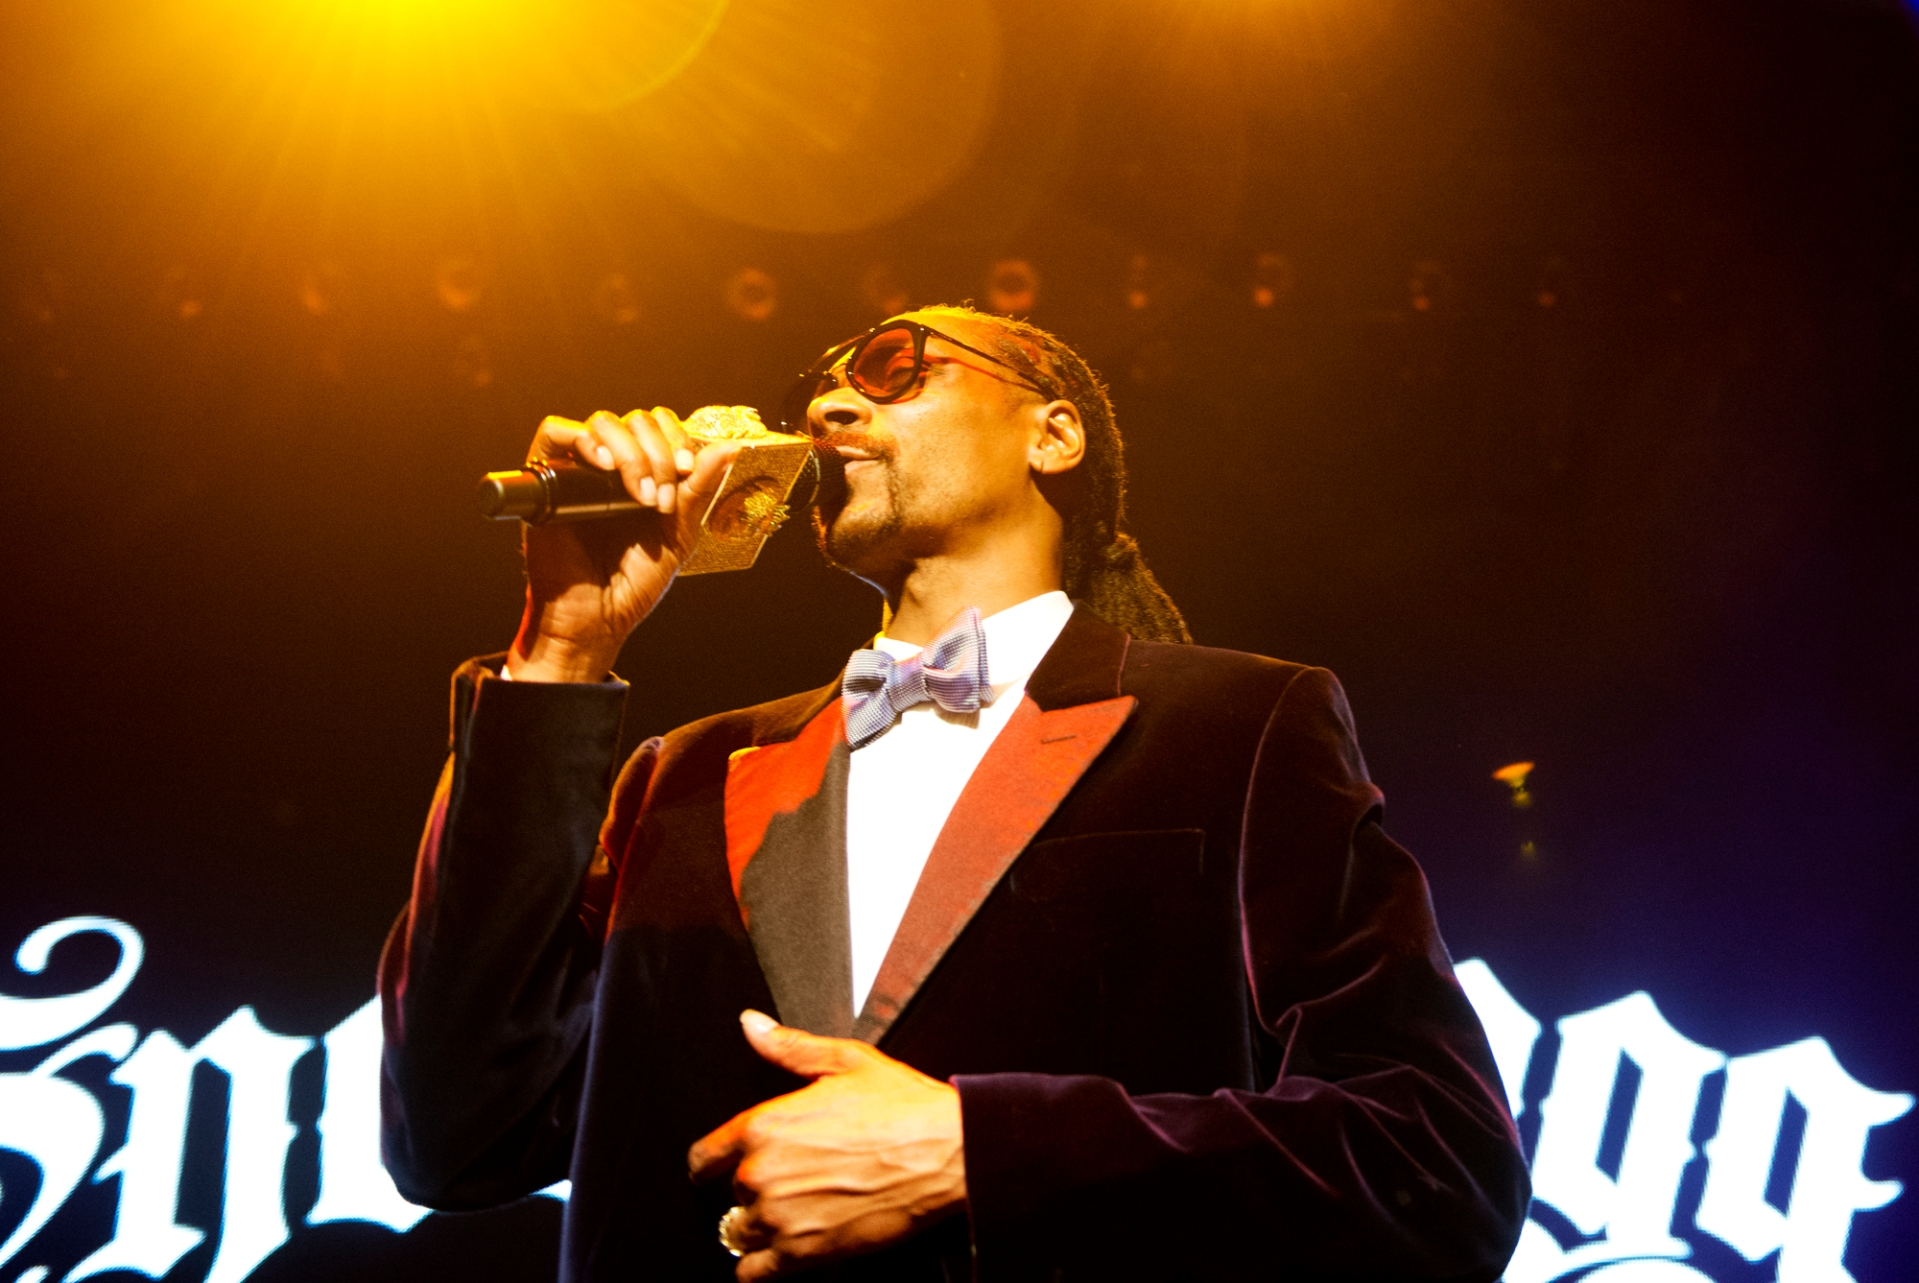 Levi's X Snoop Dogg Grammy Party